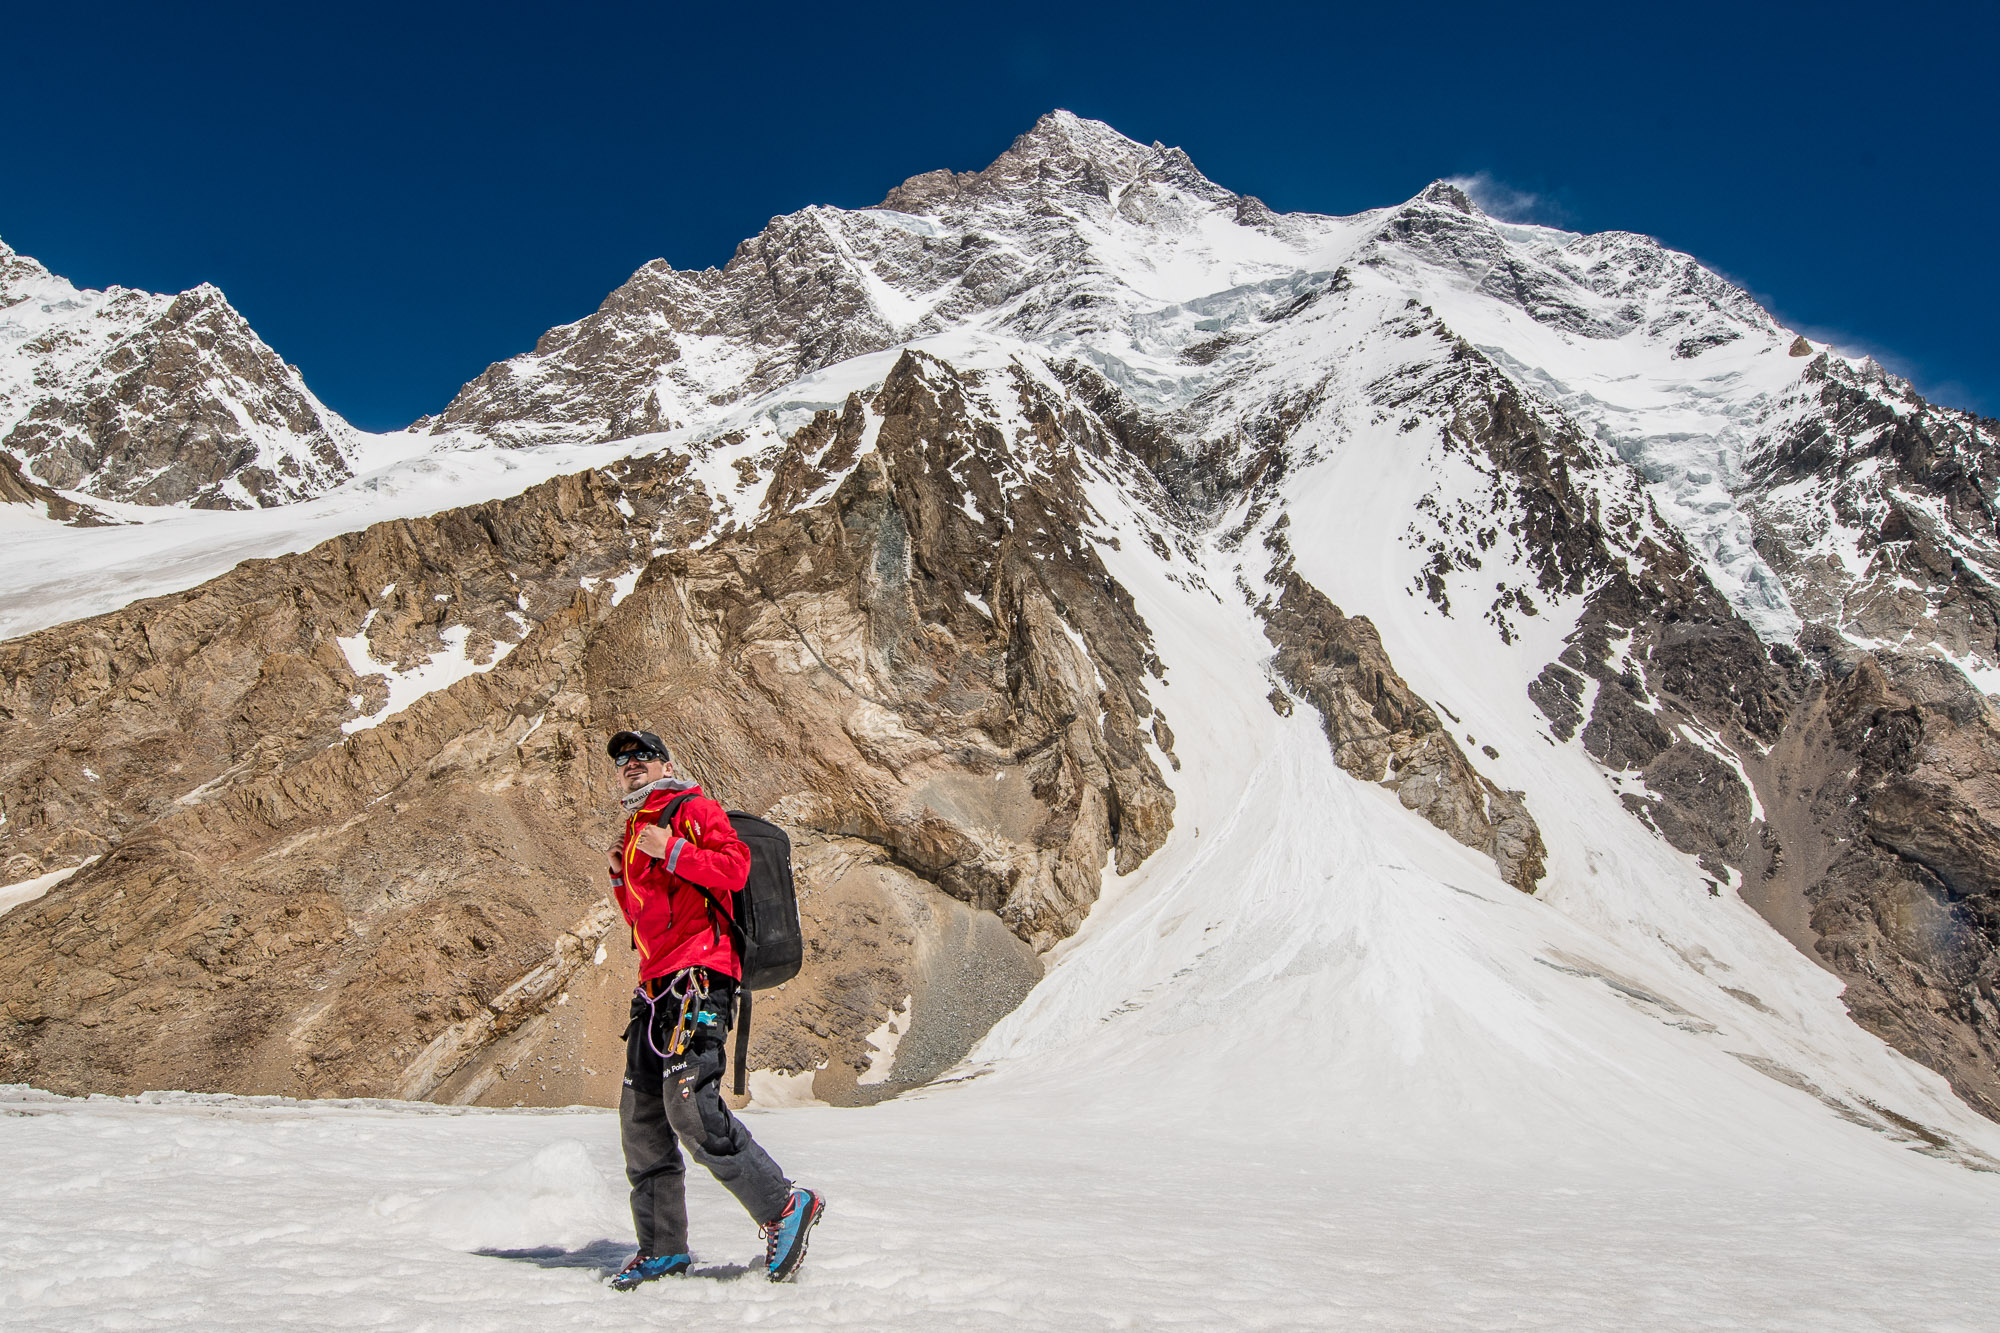 Petr proudly walking just under the second highest peak of the World, K2 (8,611 m), with his drone in the DroneGuard 450 BP AW backpack!